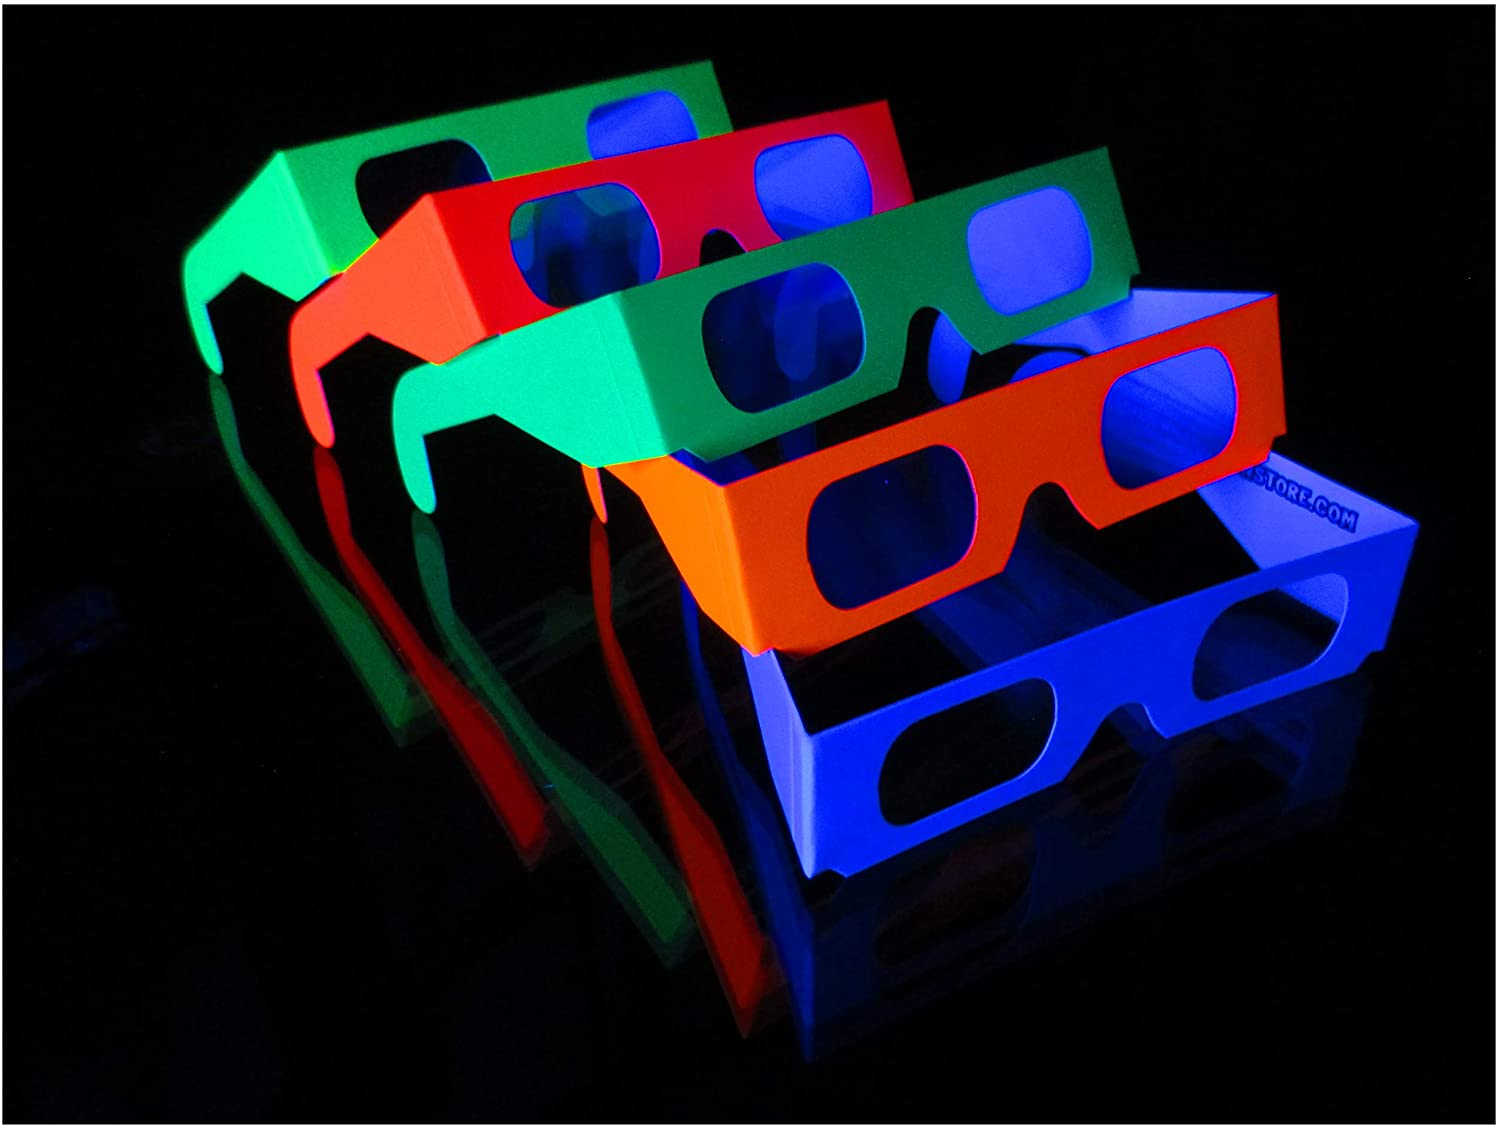 Fireworks Diffraction Glasses Mix - 40 Neon Frames / 10 Rainbow Hearts Glasses = 50 Paper Glasses